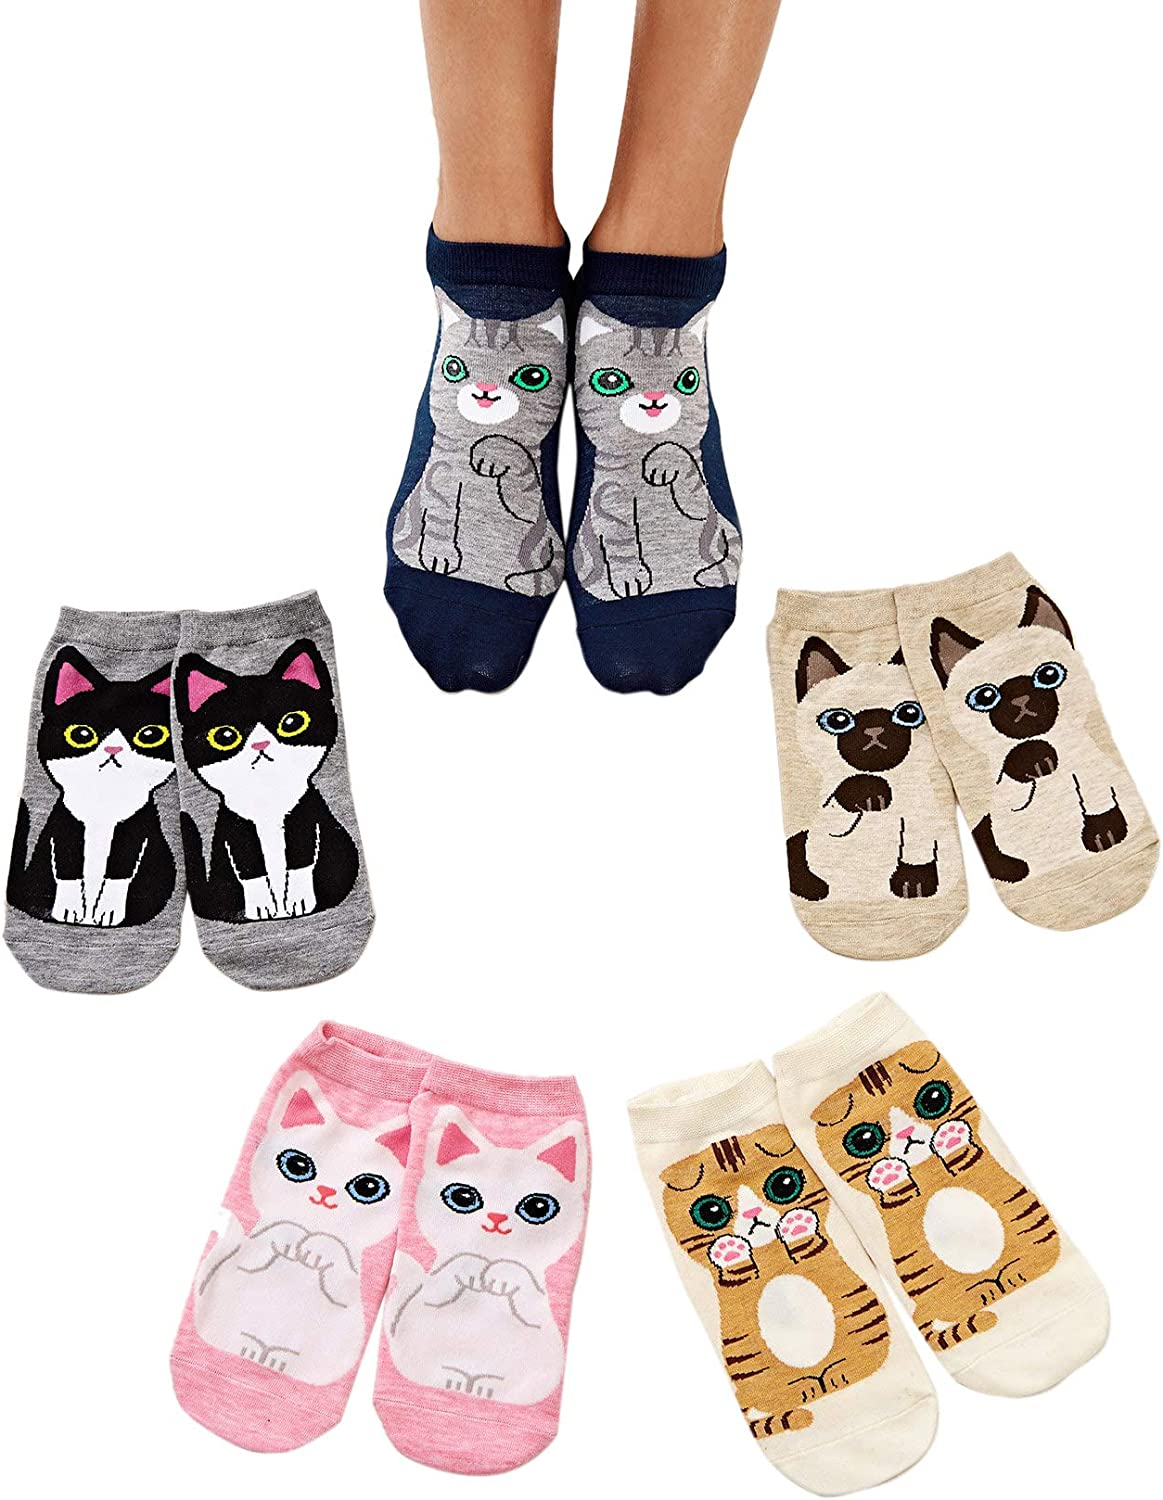 Milumia Women Cute Casual Cartoon Cat Print Cotton Comfy Ankle Socks 4 Pairs 5 Pack